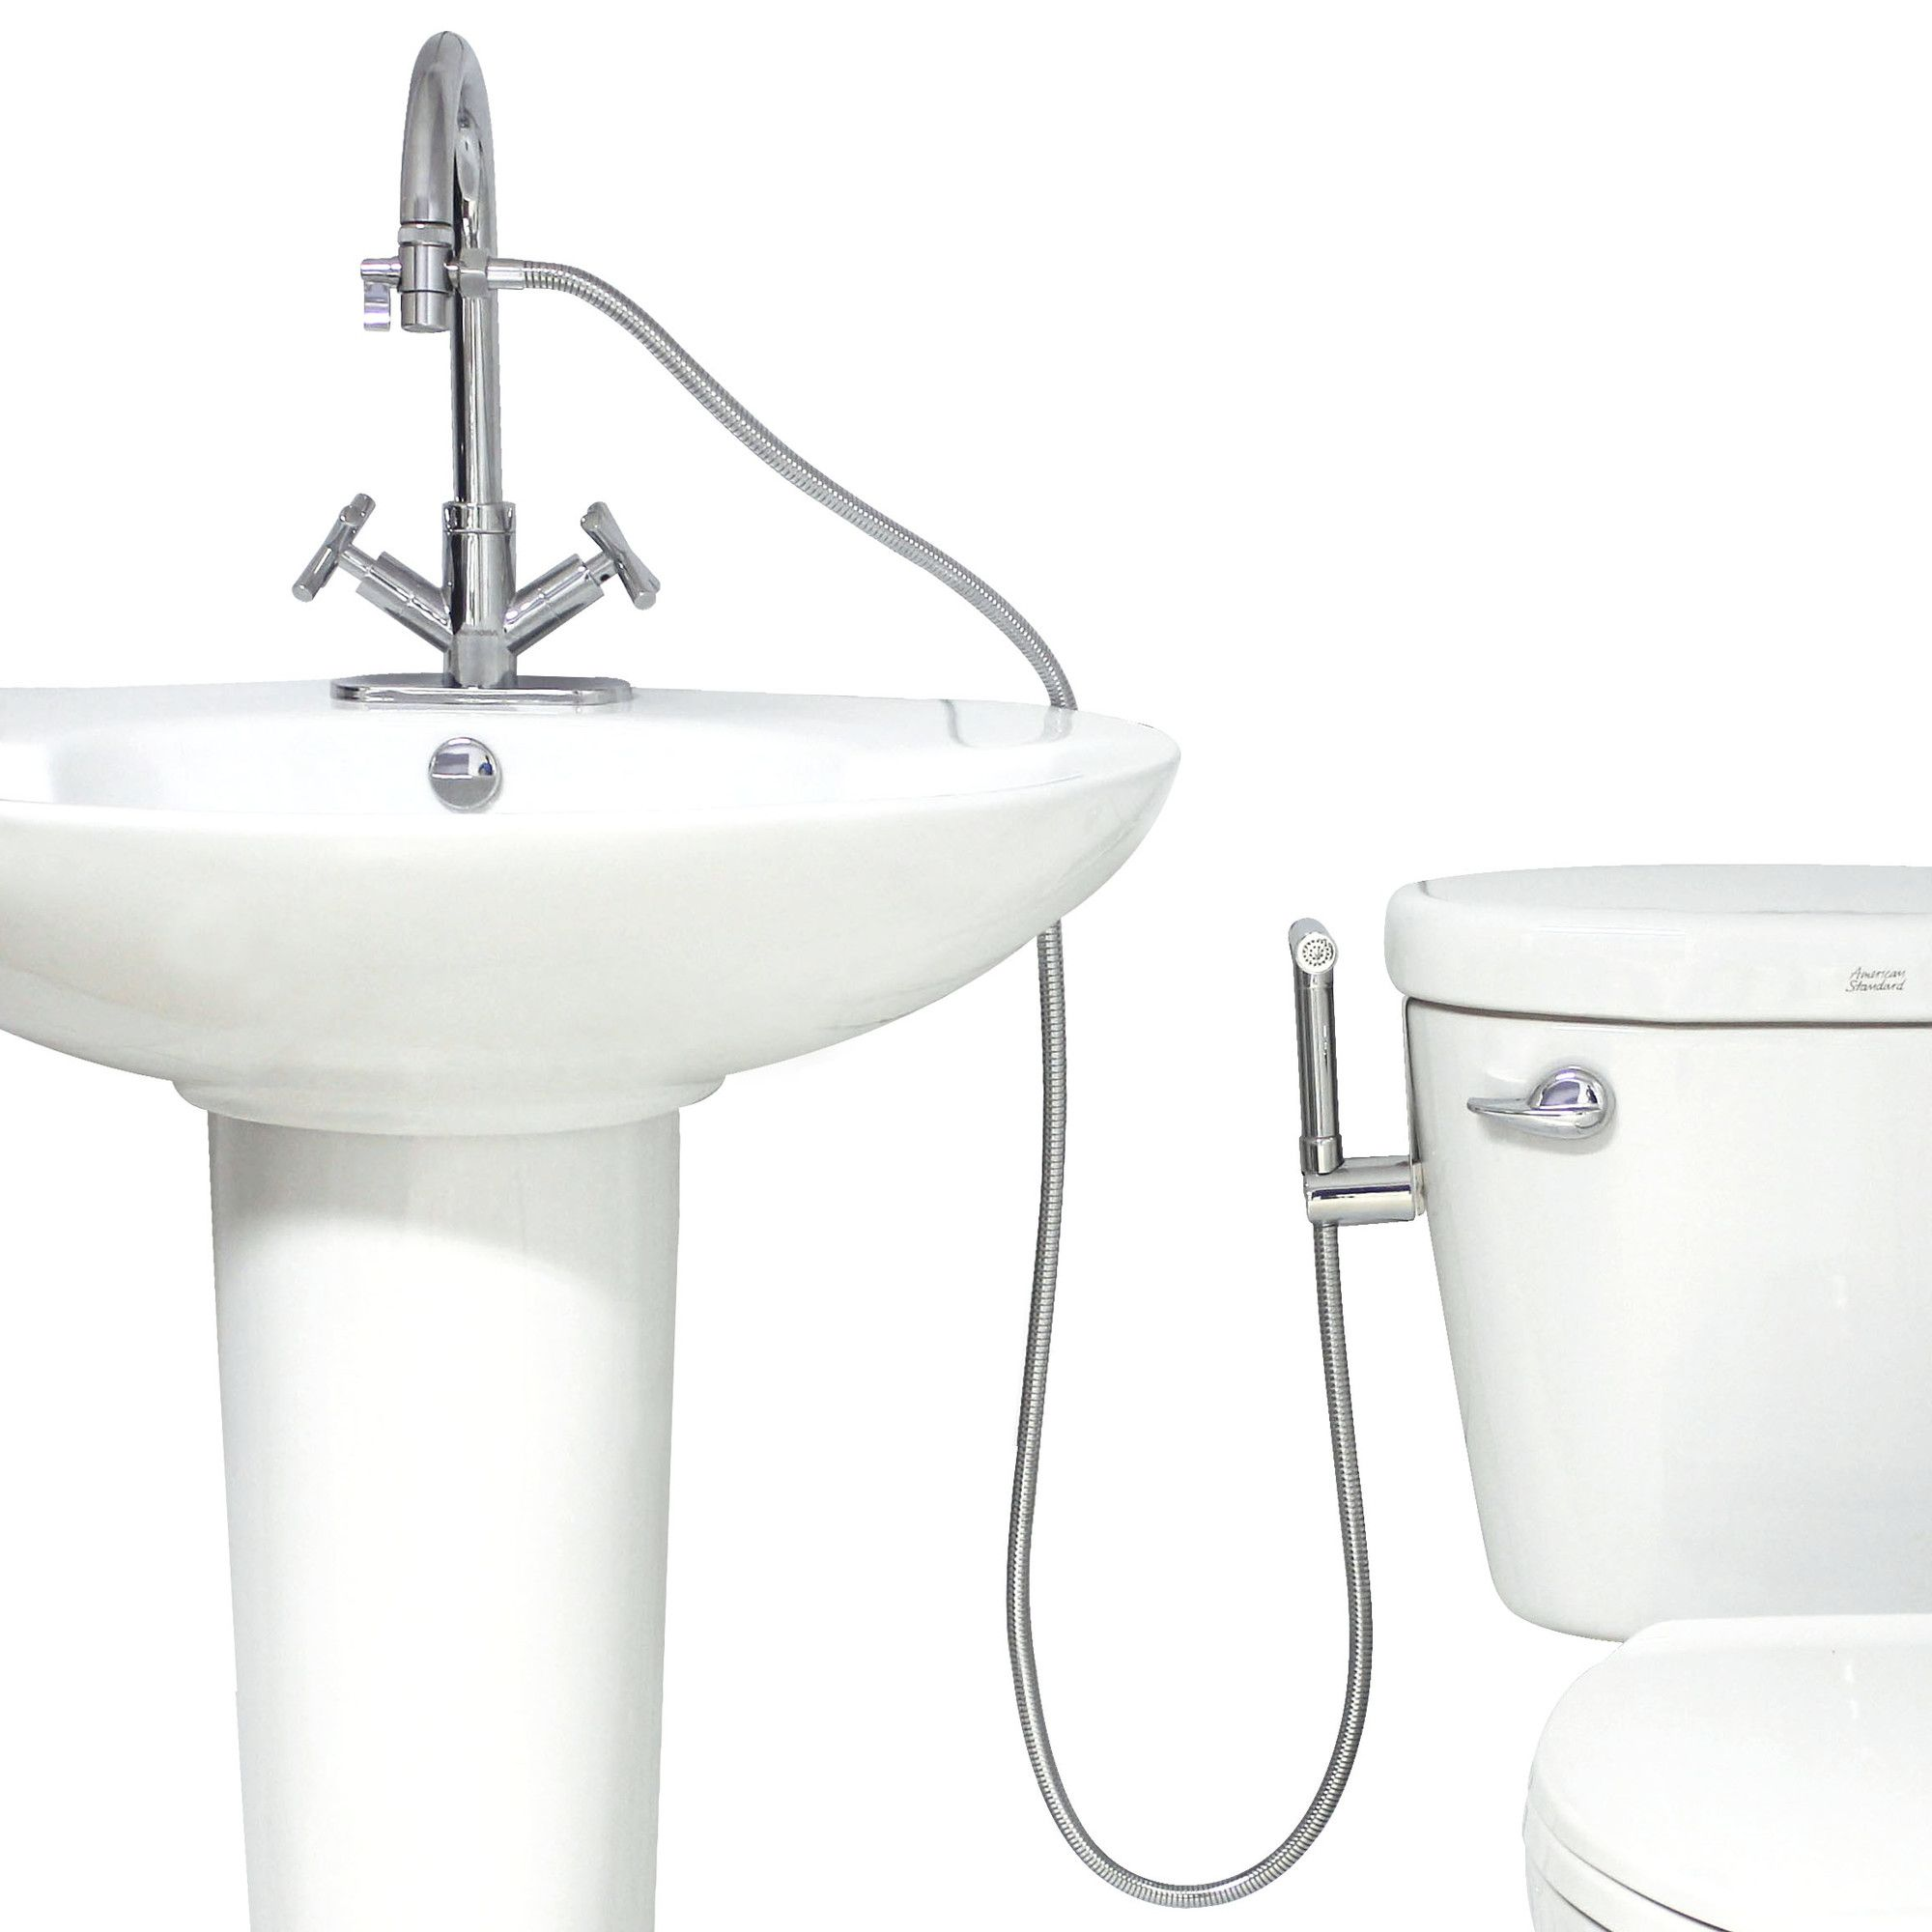 Premium Warm Water Diaper Sprayer And Bidet Accessory Products